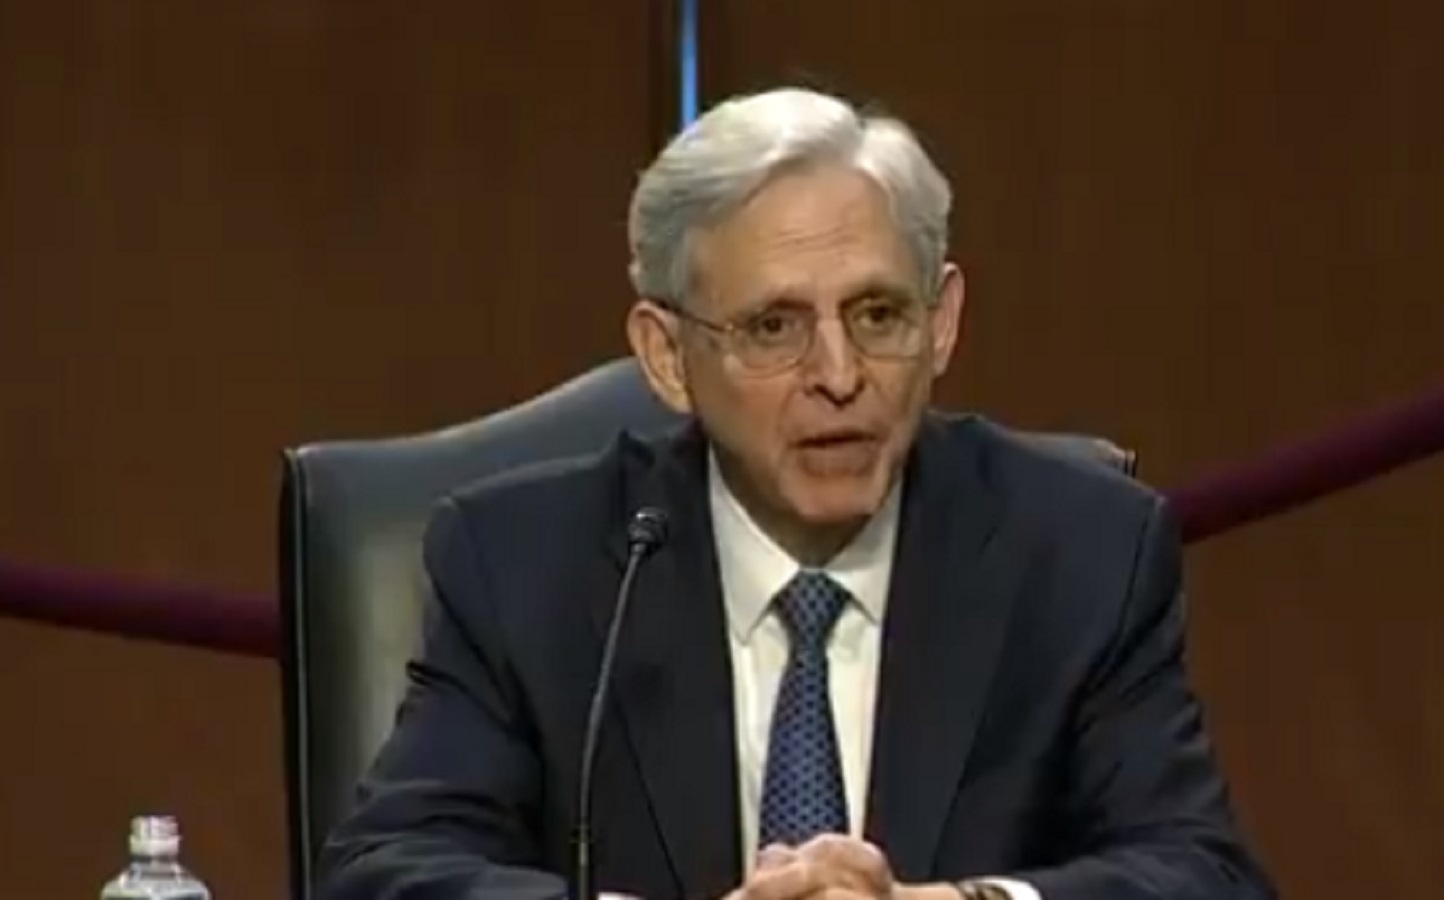 WATCH: Biden AG Nominee Merrick Garland Refuses to Call Illegally Crossing the Border a Crime